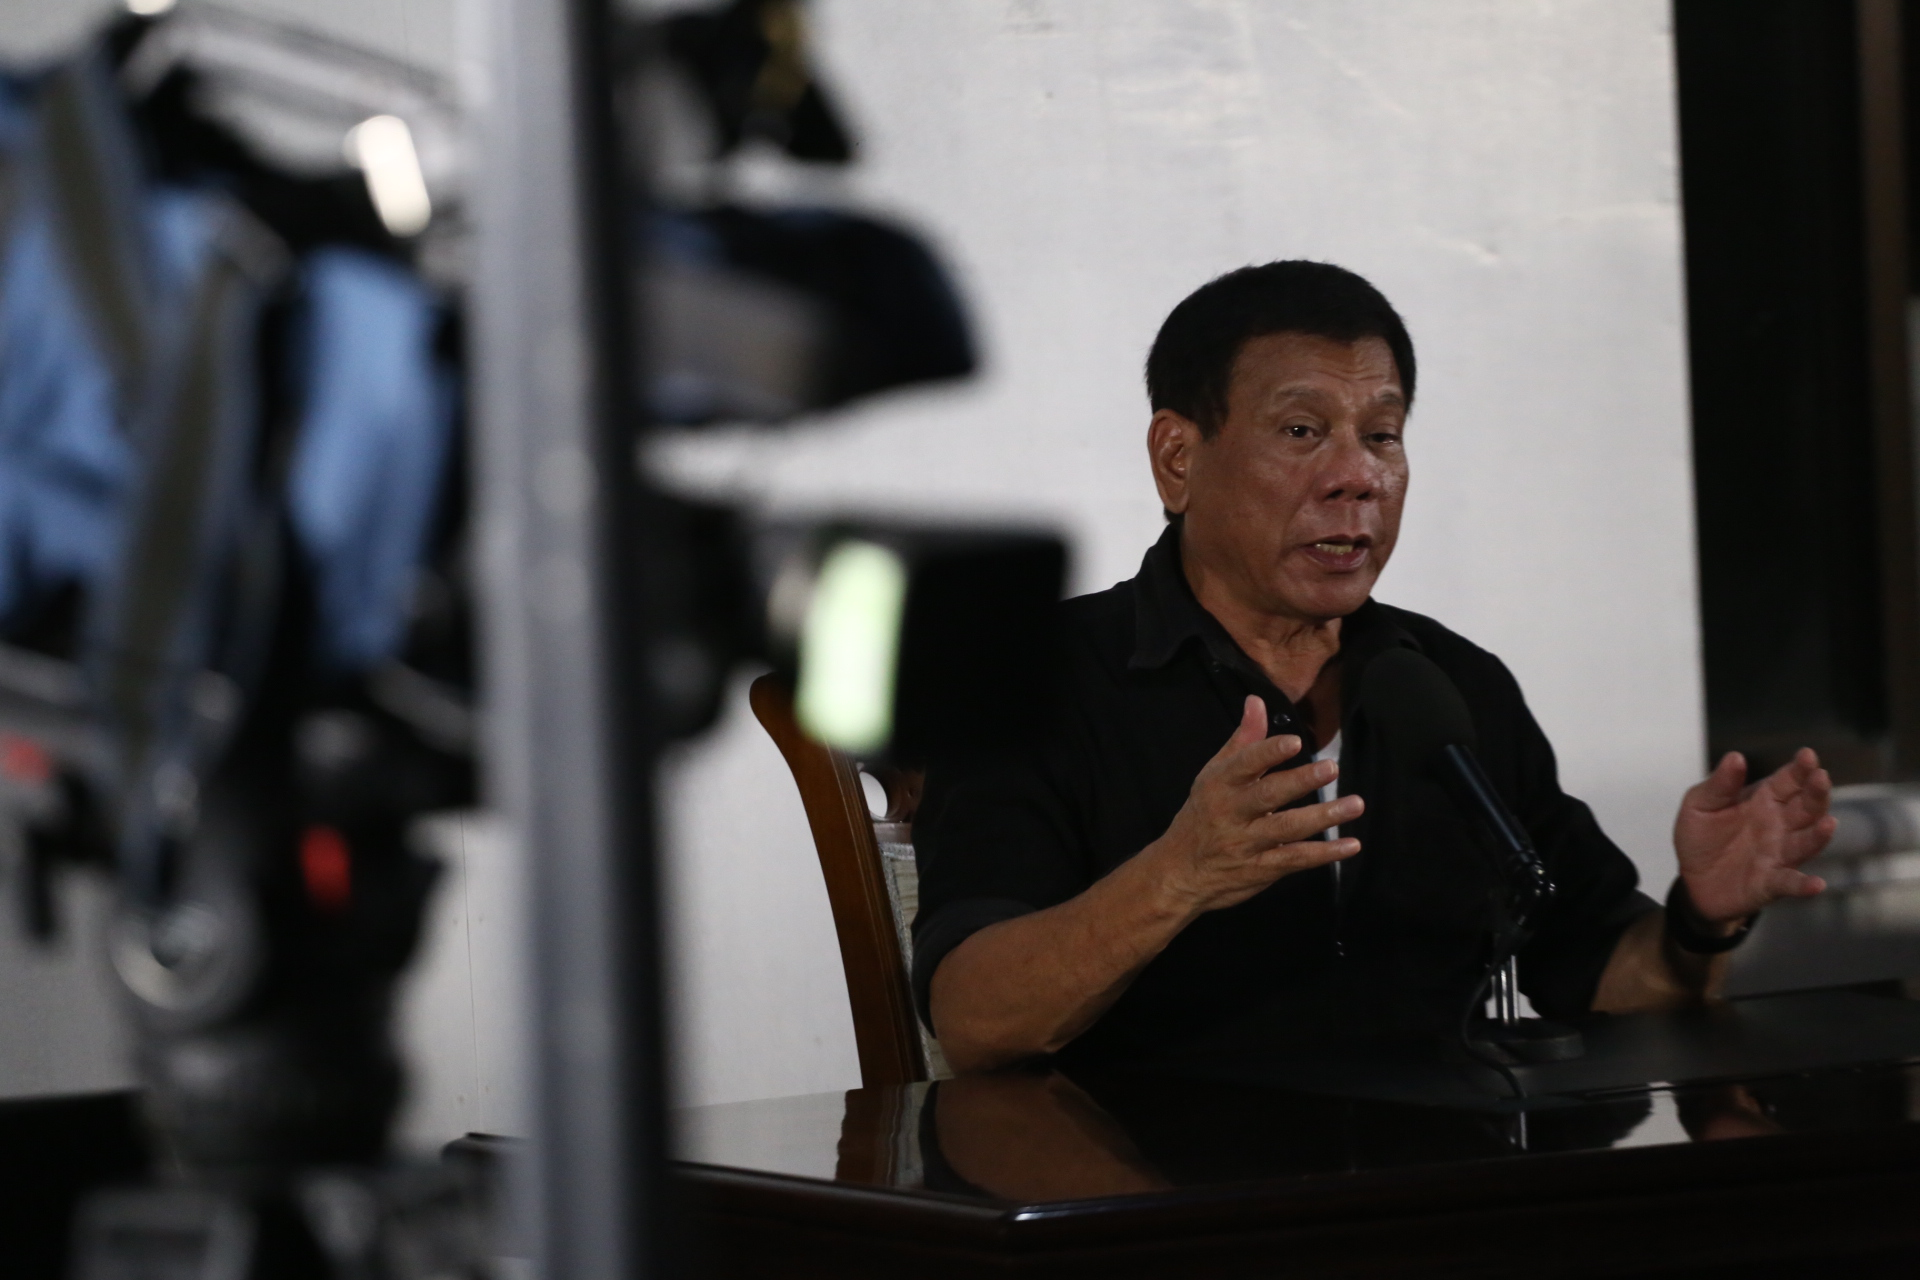 EXAMPLE. Rodrigo Duterte cites Jun Pala, a former friend, in a press conference in Davao City as an example of journalists who deserved what happened to them. Photo by Manman Dejeto/Rappler